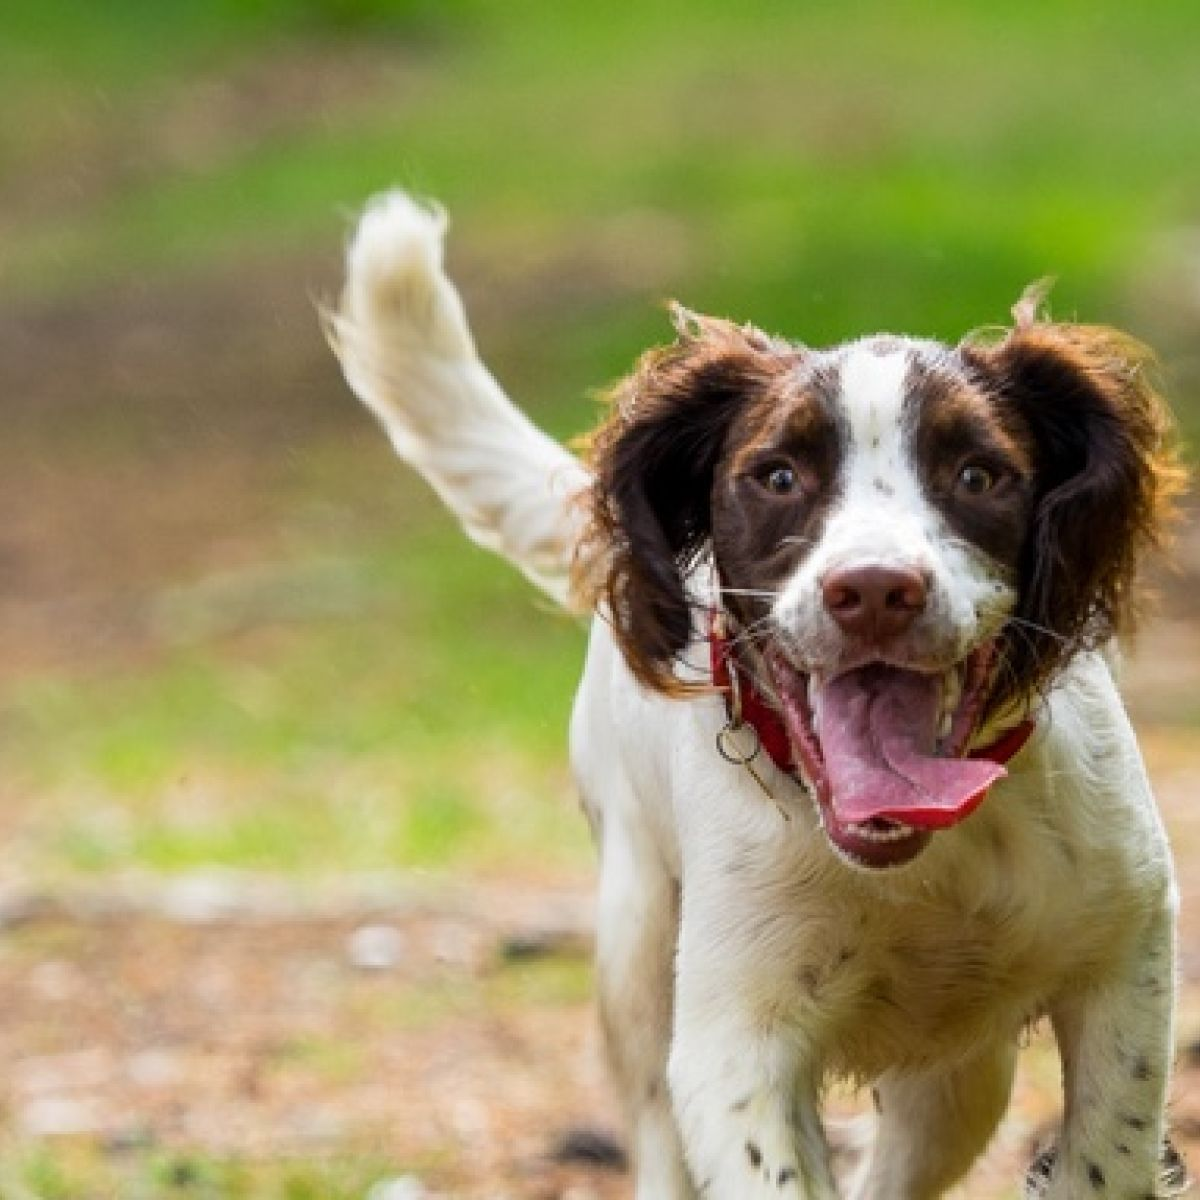 Dogs are no smarter than goats, scientists say